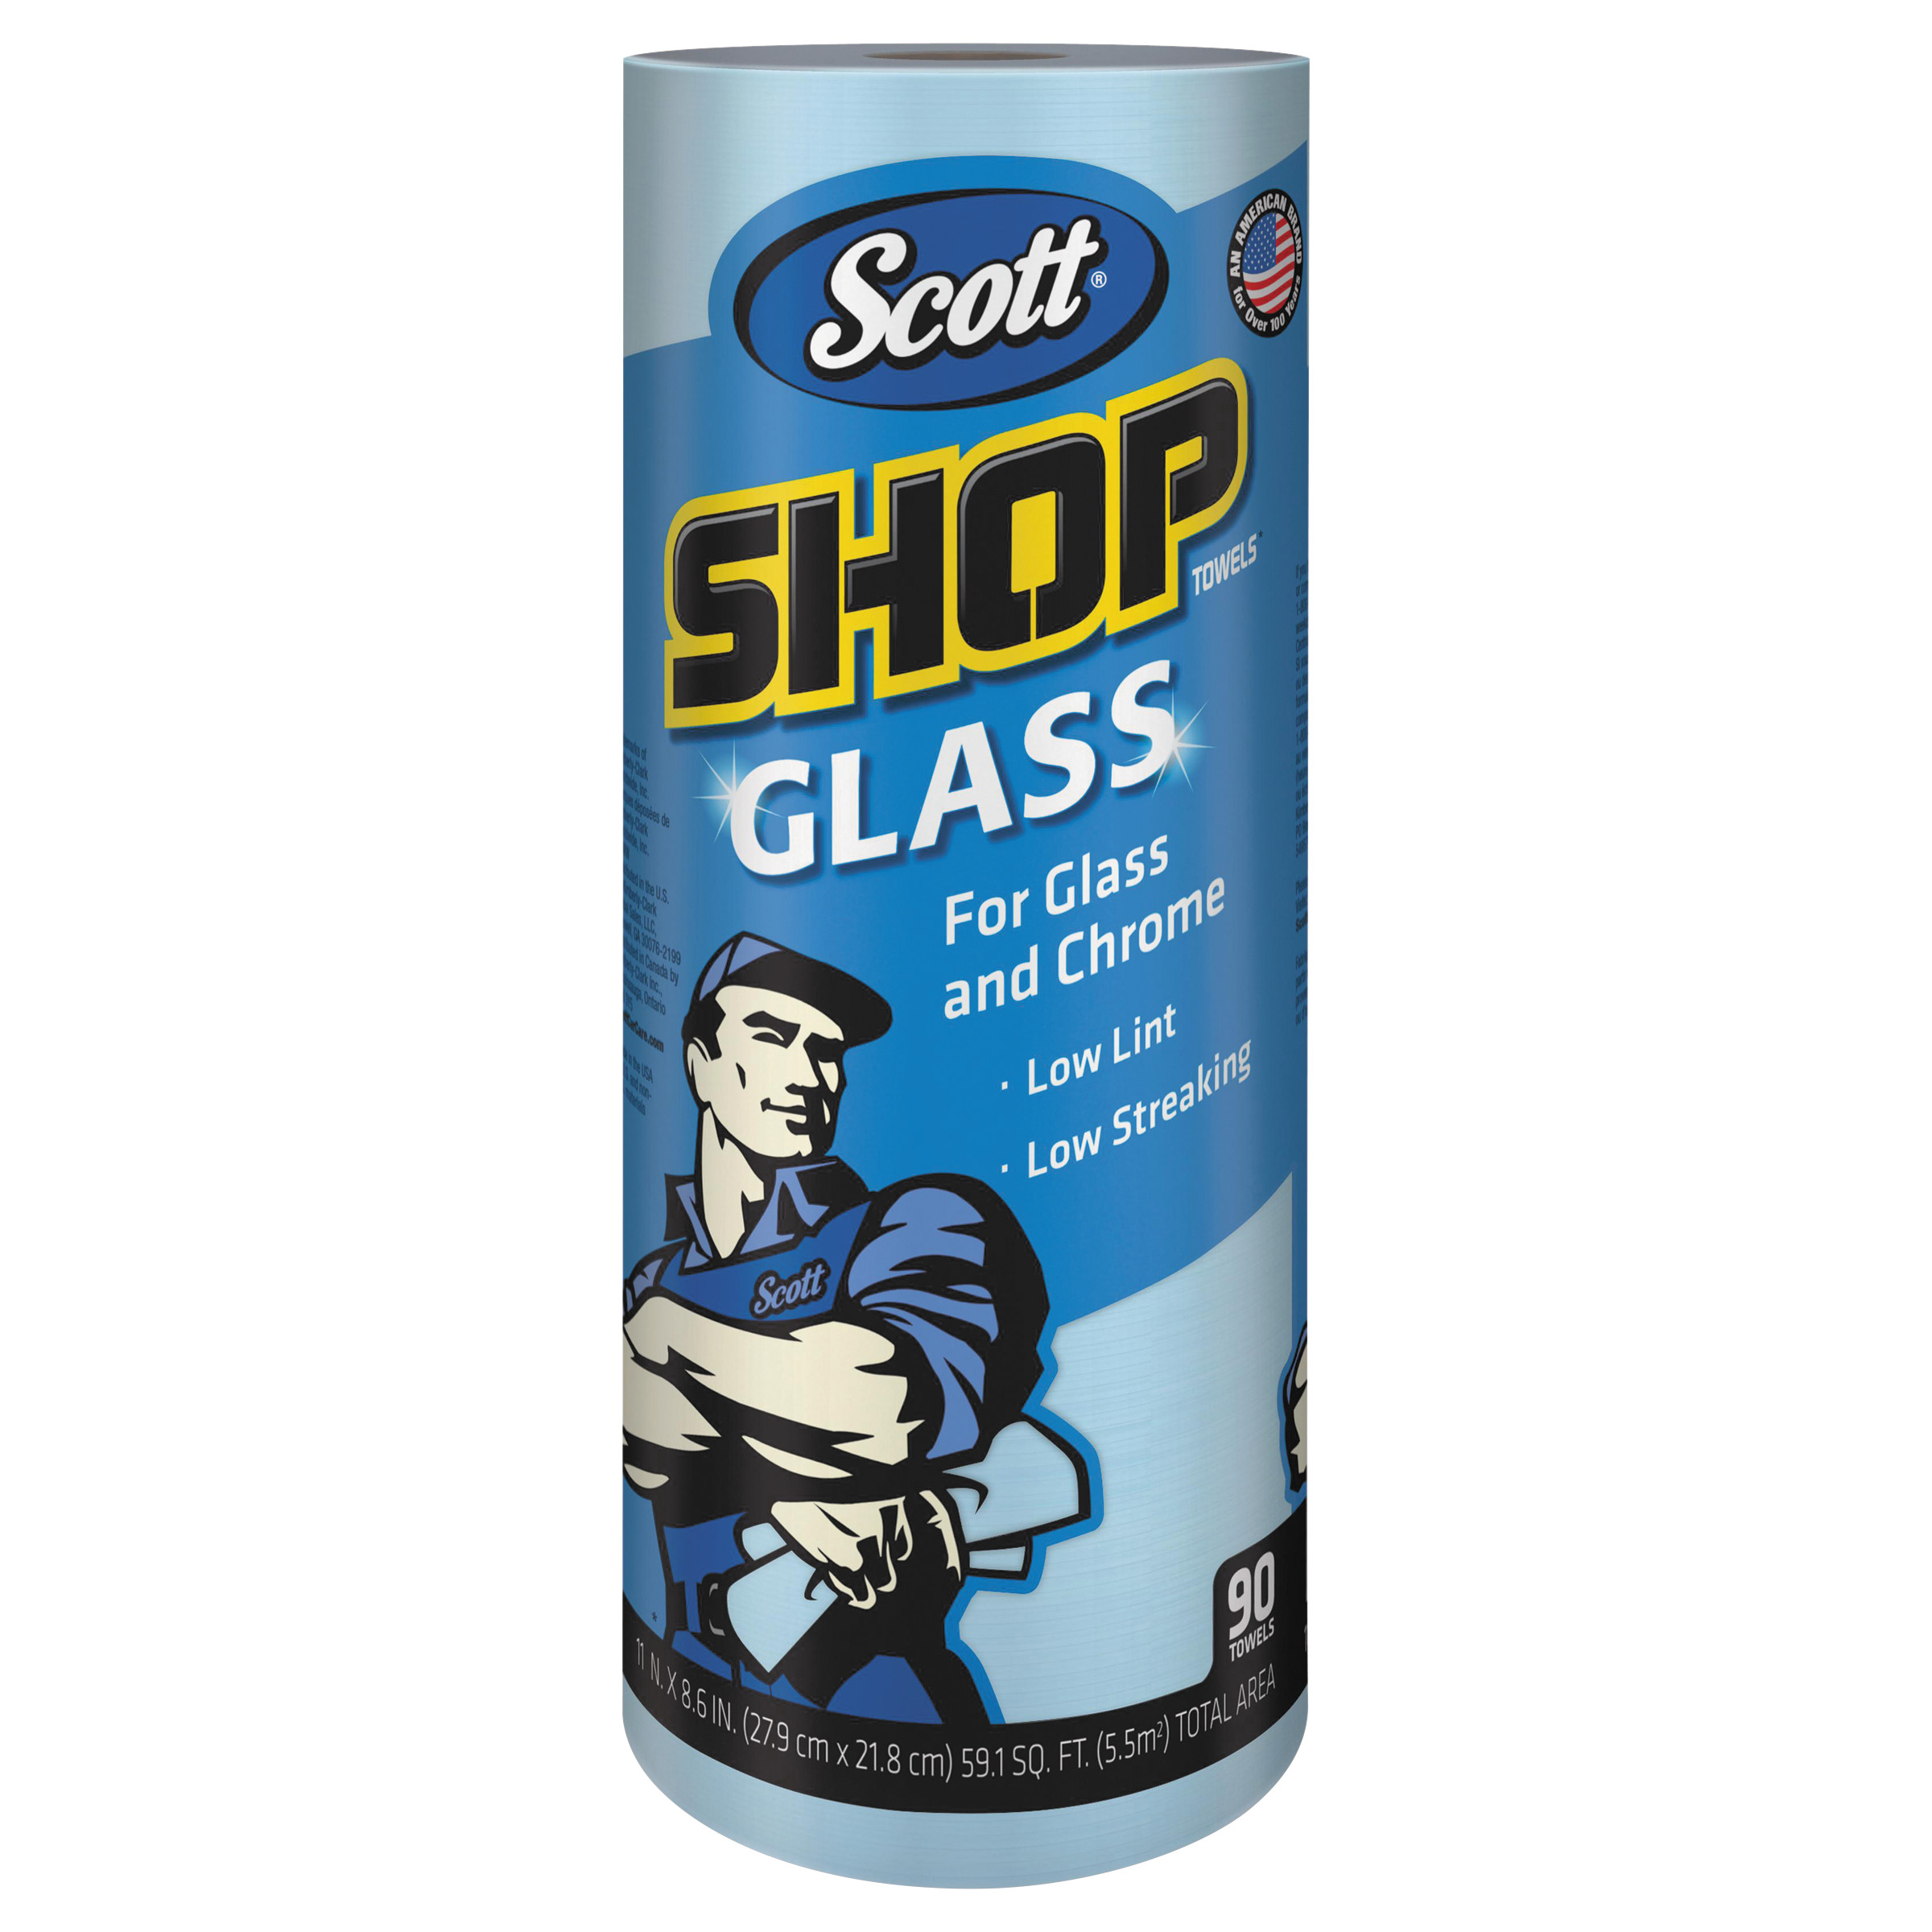 Scott Professional Glass & Chrome Shop Towels, Low Tint, Low Streaking, 90 Sheets